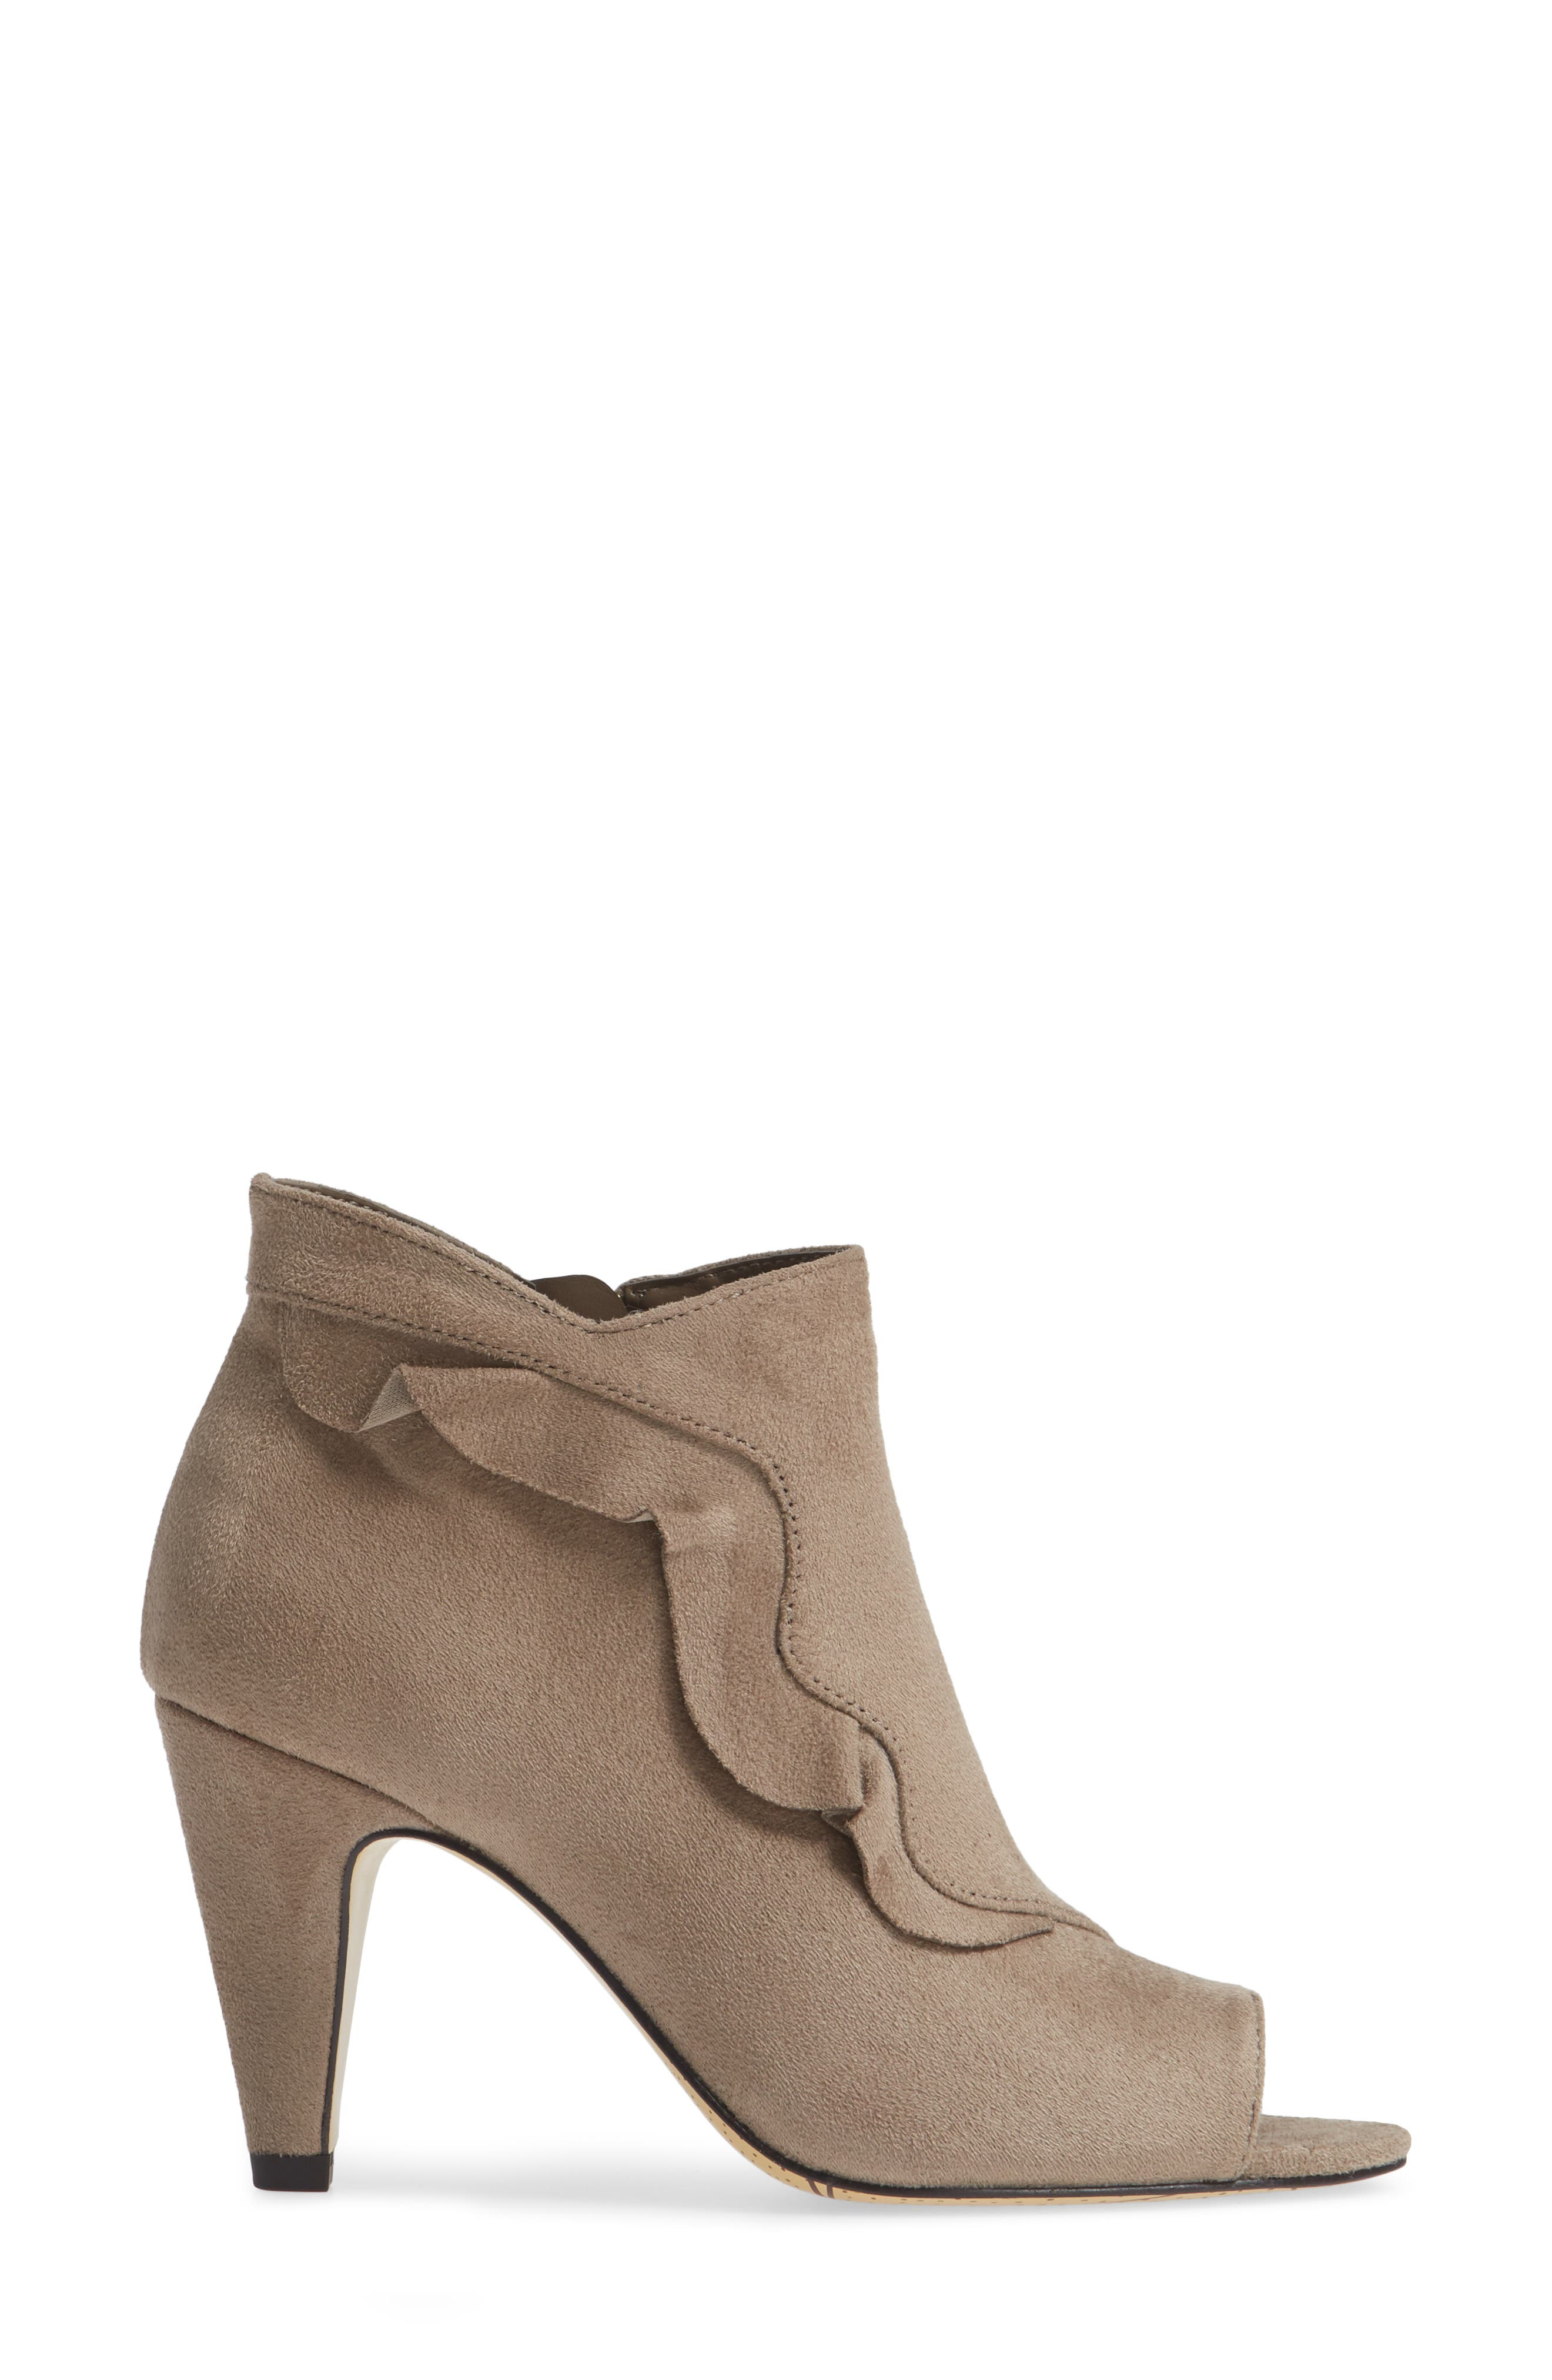 Nicolette Ruffle Dress Bootie,                             Alternate thumbnail 3, color,                             STONE SUEDE